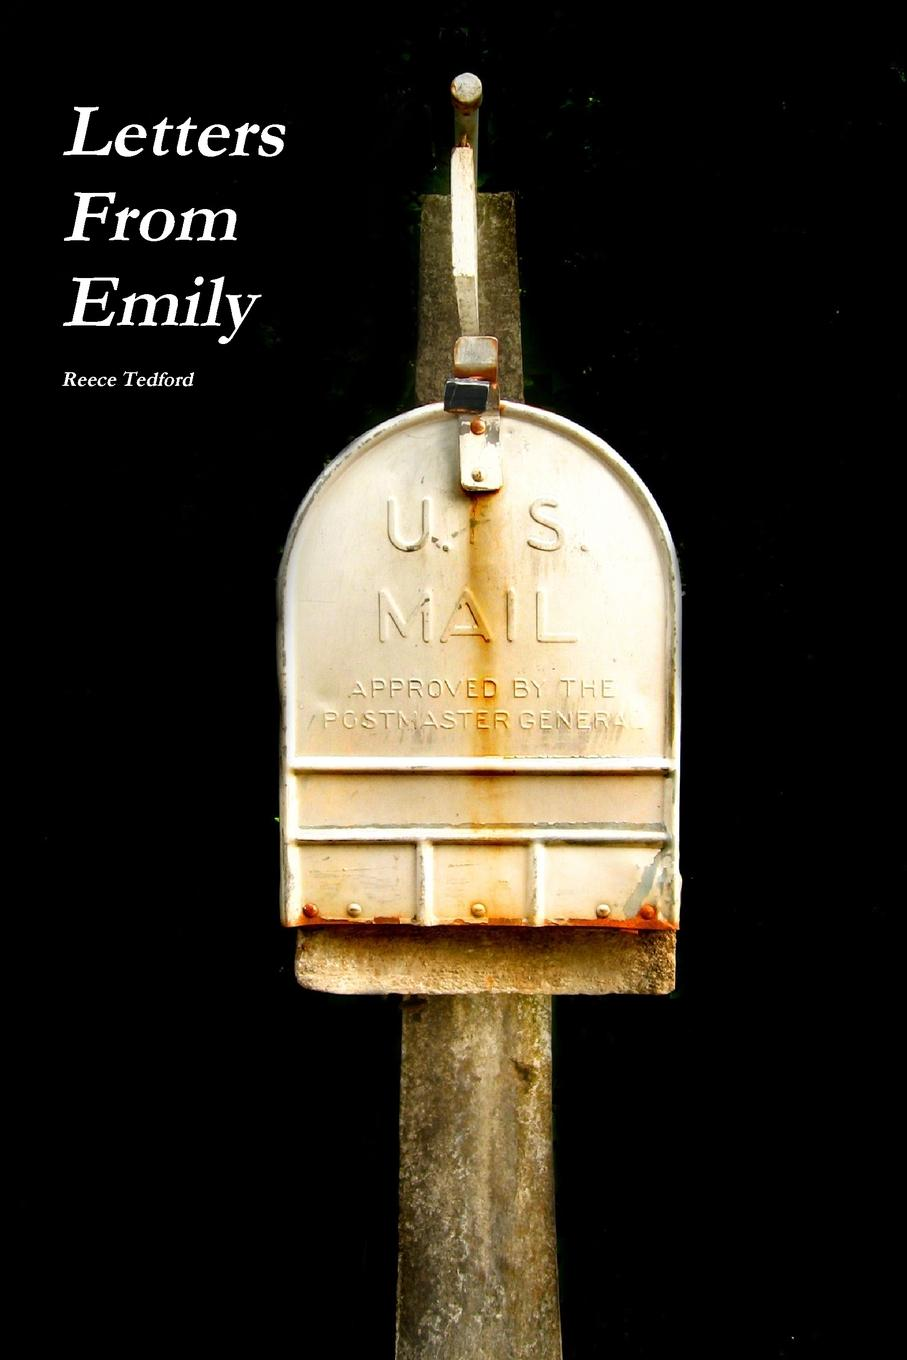 reece tedford Letters From Emily недорого